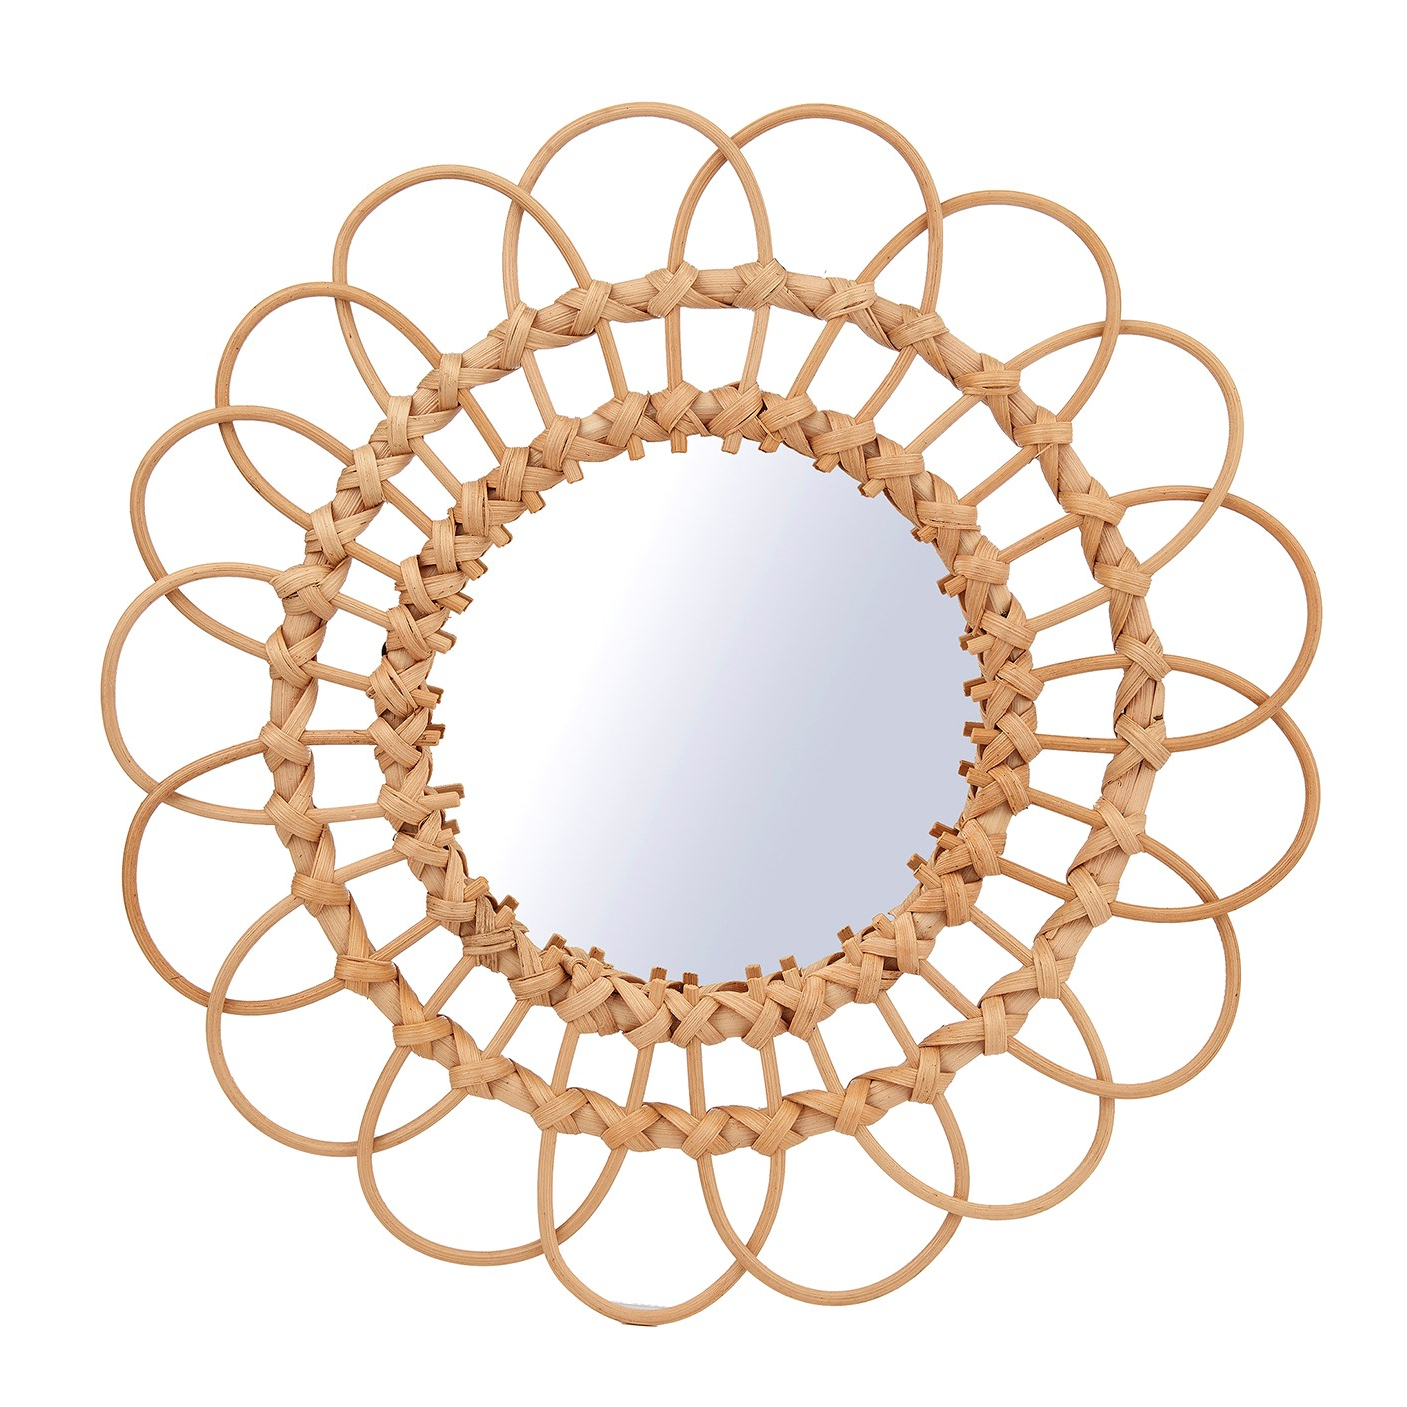 Rattan Wall Mirrors Throughout Most Current Rattan Wall Mirror – Large (Gallery 6 of 20)